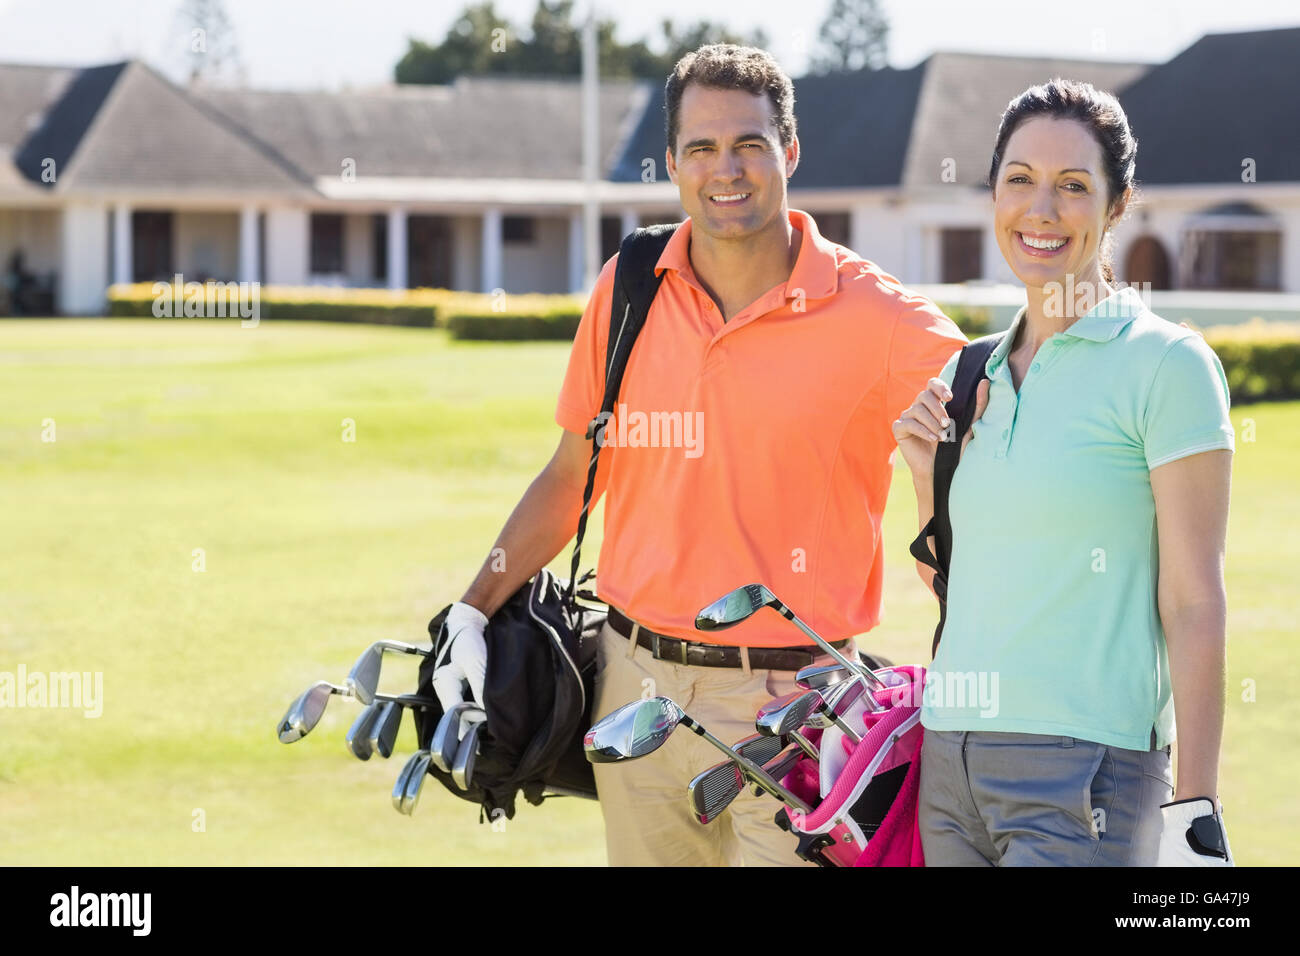 Portrait of couple carrying golf bags - Stock Image